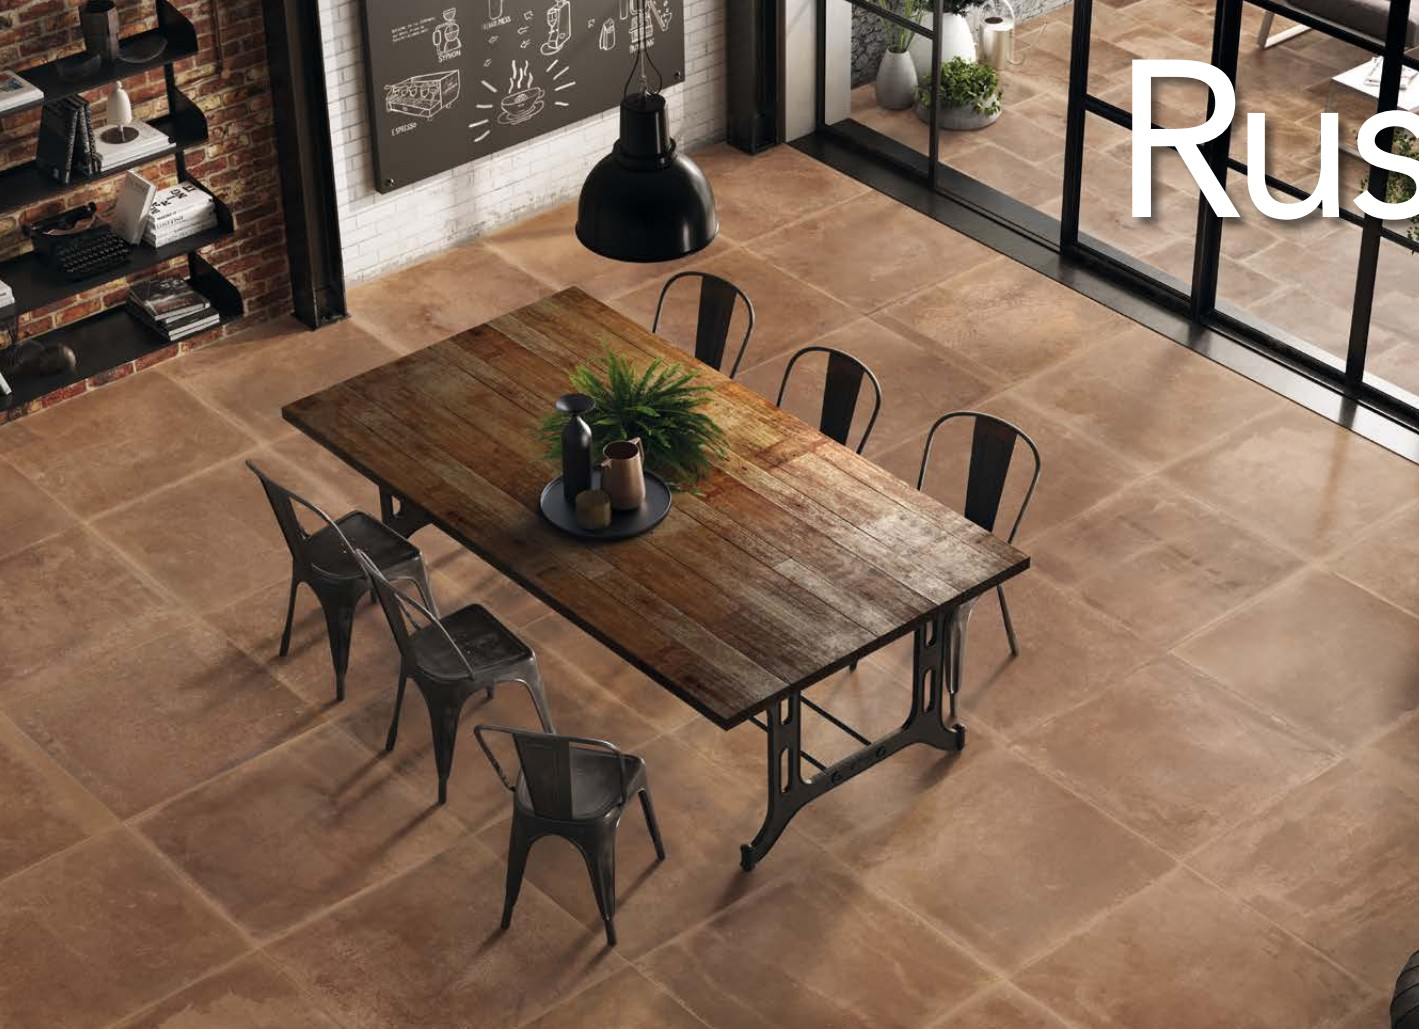 Carrelage provenza s rie dust 80x80 1 choix carrelage for Achat carrelage italien